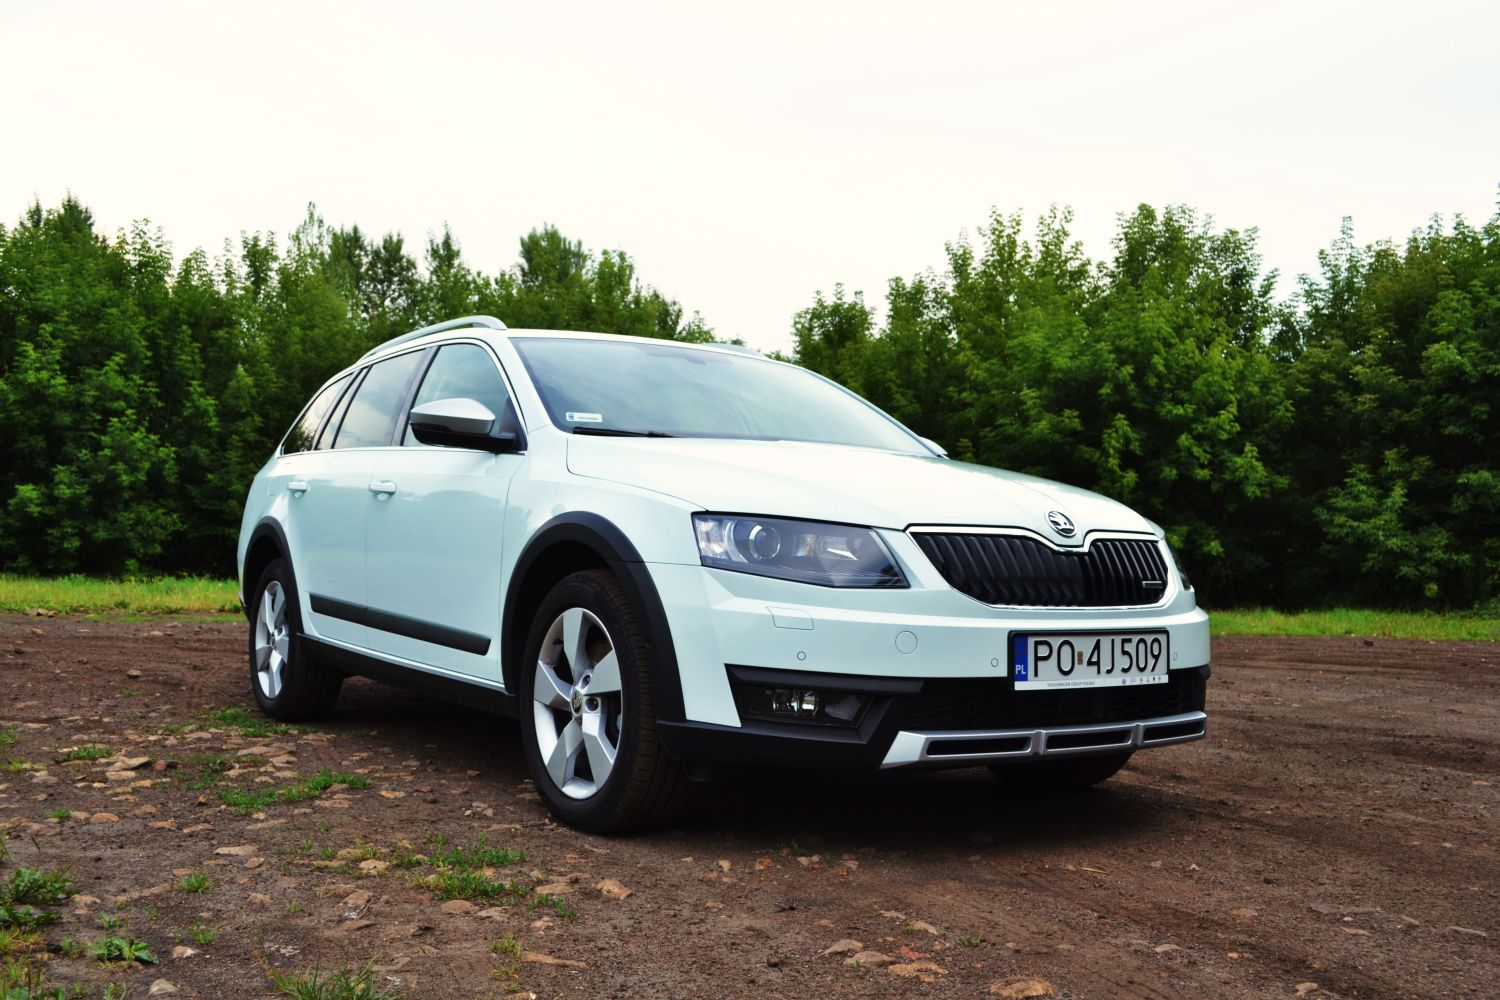 skoda octavia scout 2 0 tdi dsg 4x4 ta najdzielniejsza. Black Bedroom Furniture Sets. Home Design Ideas